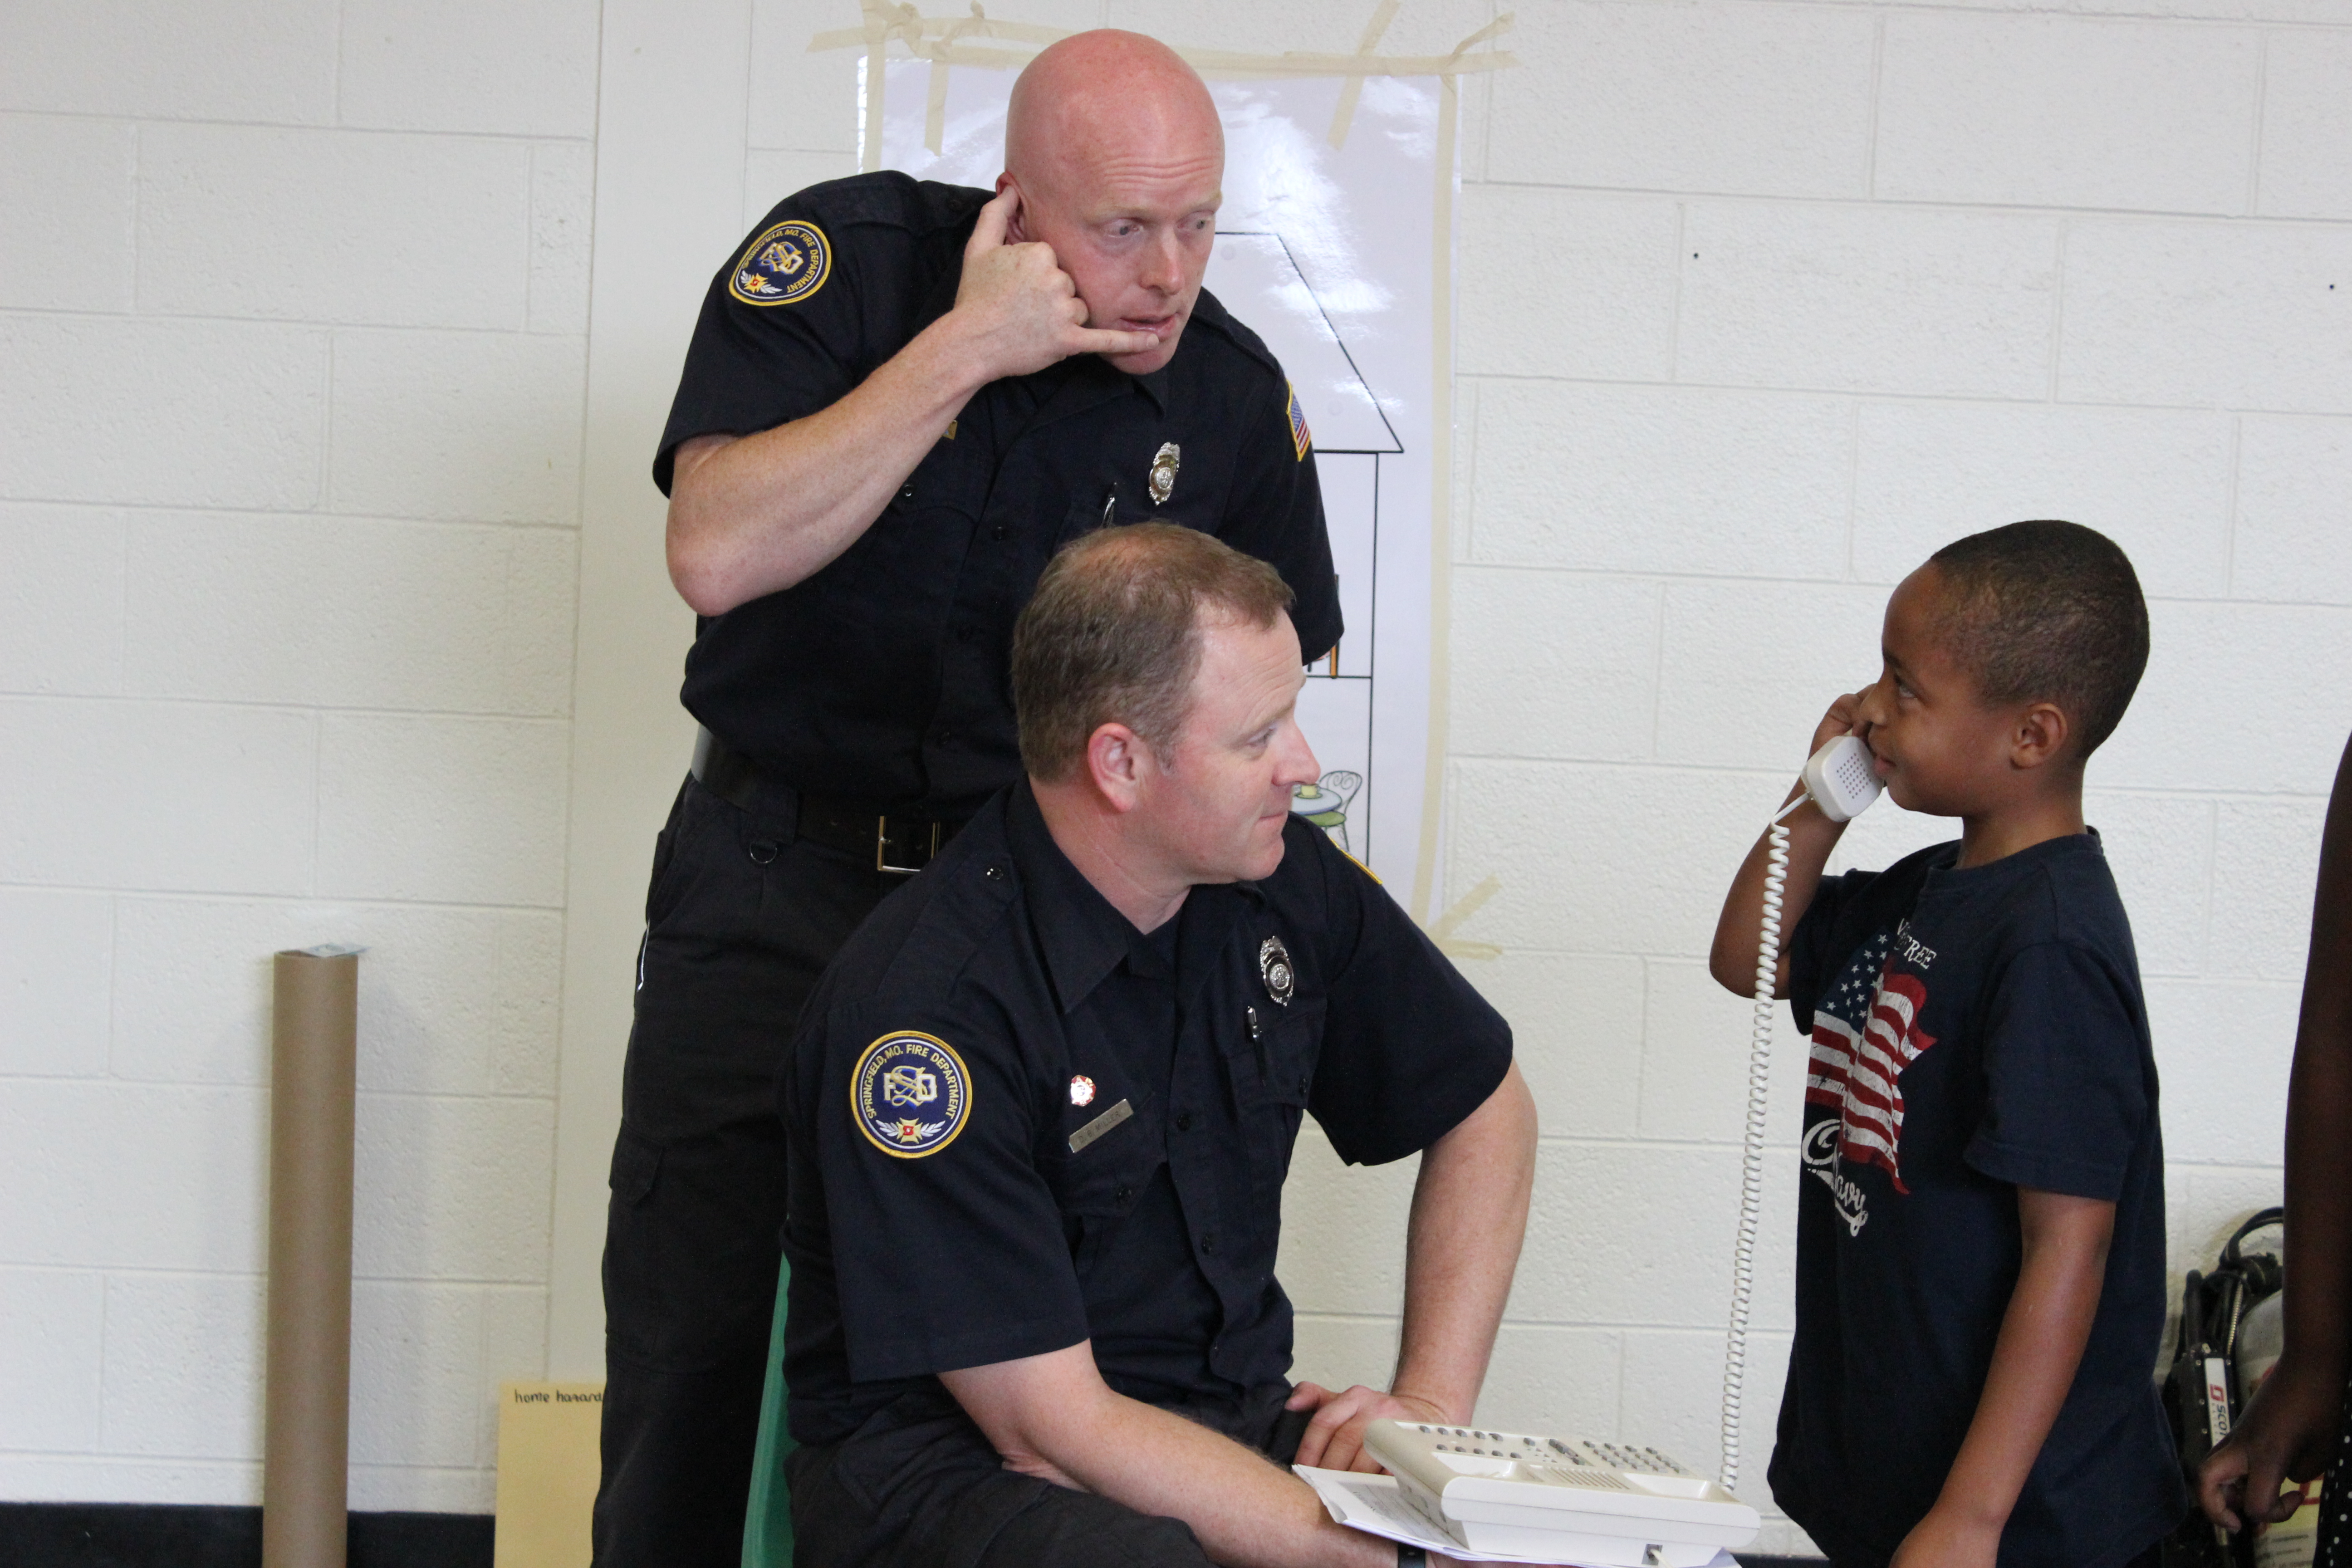 Firefighters educating boy